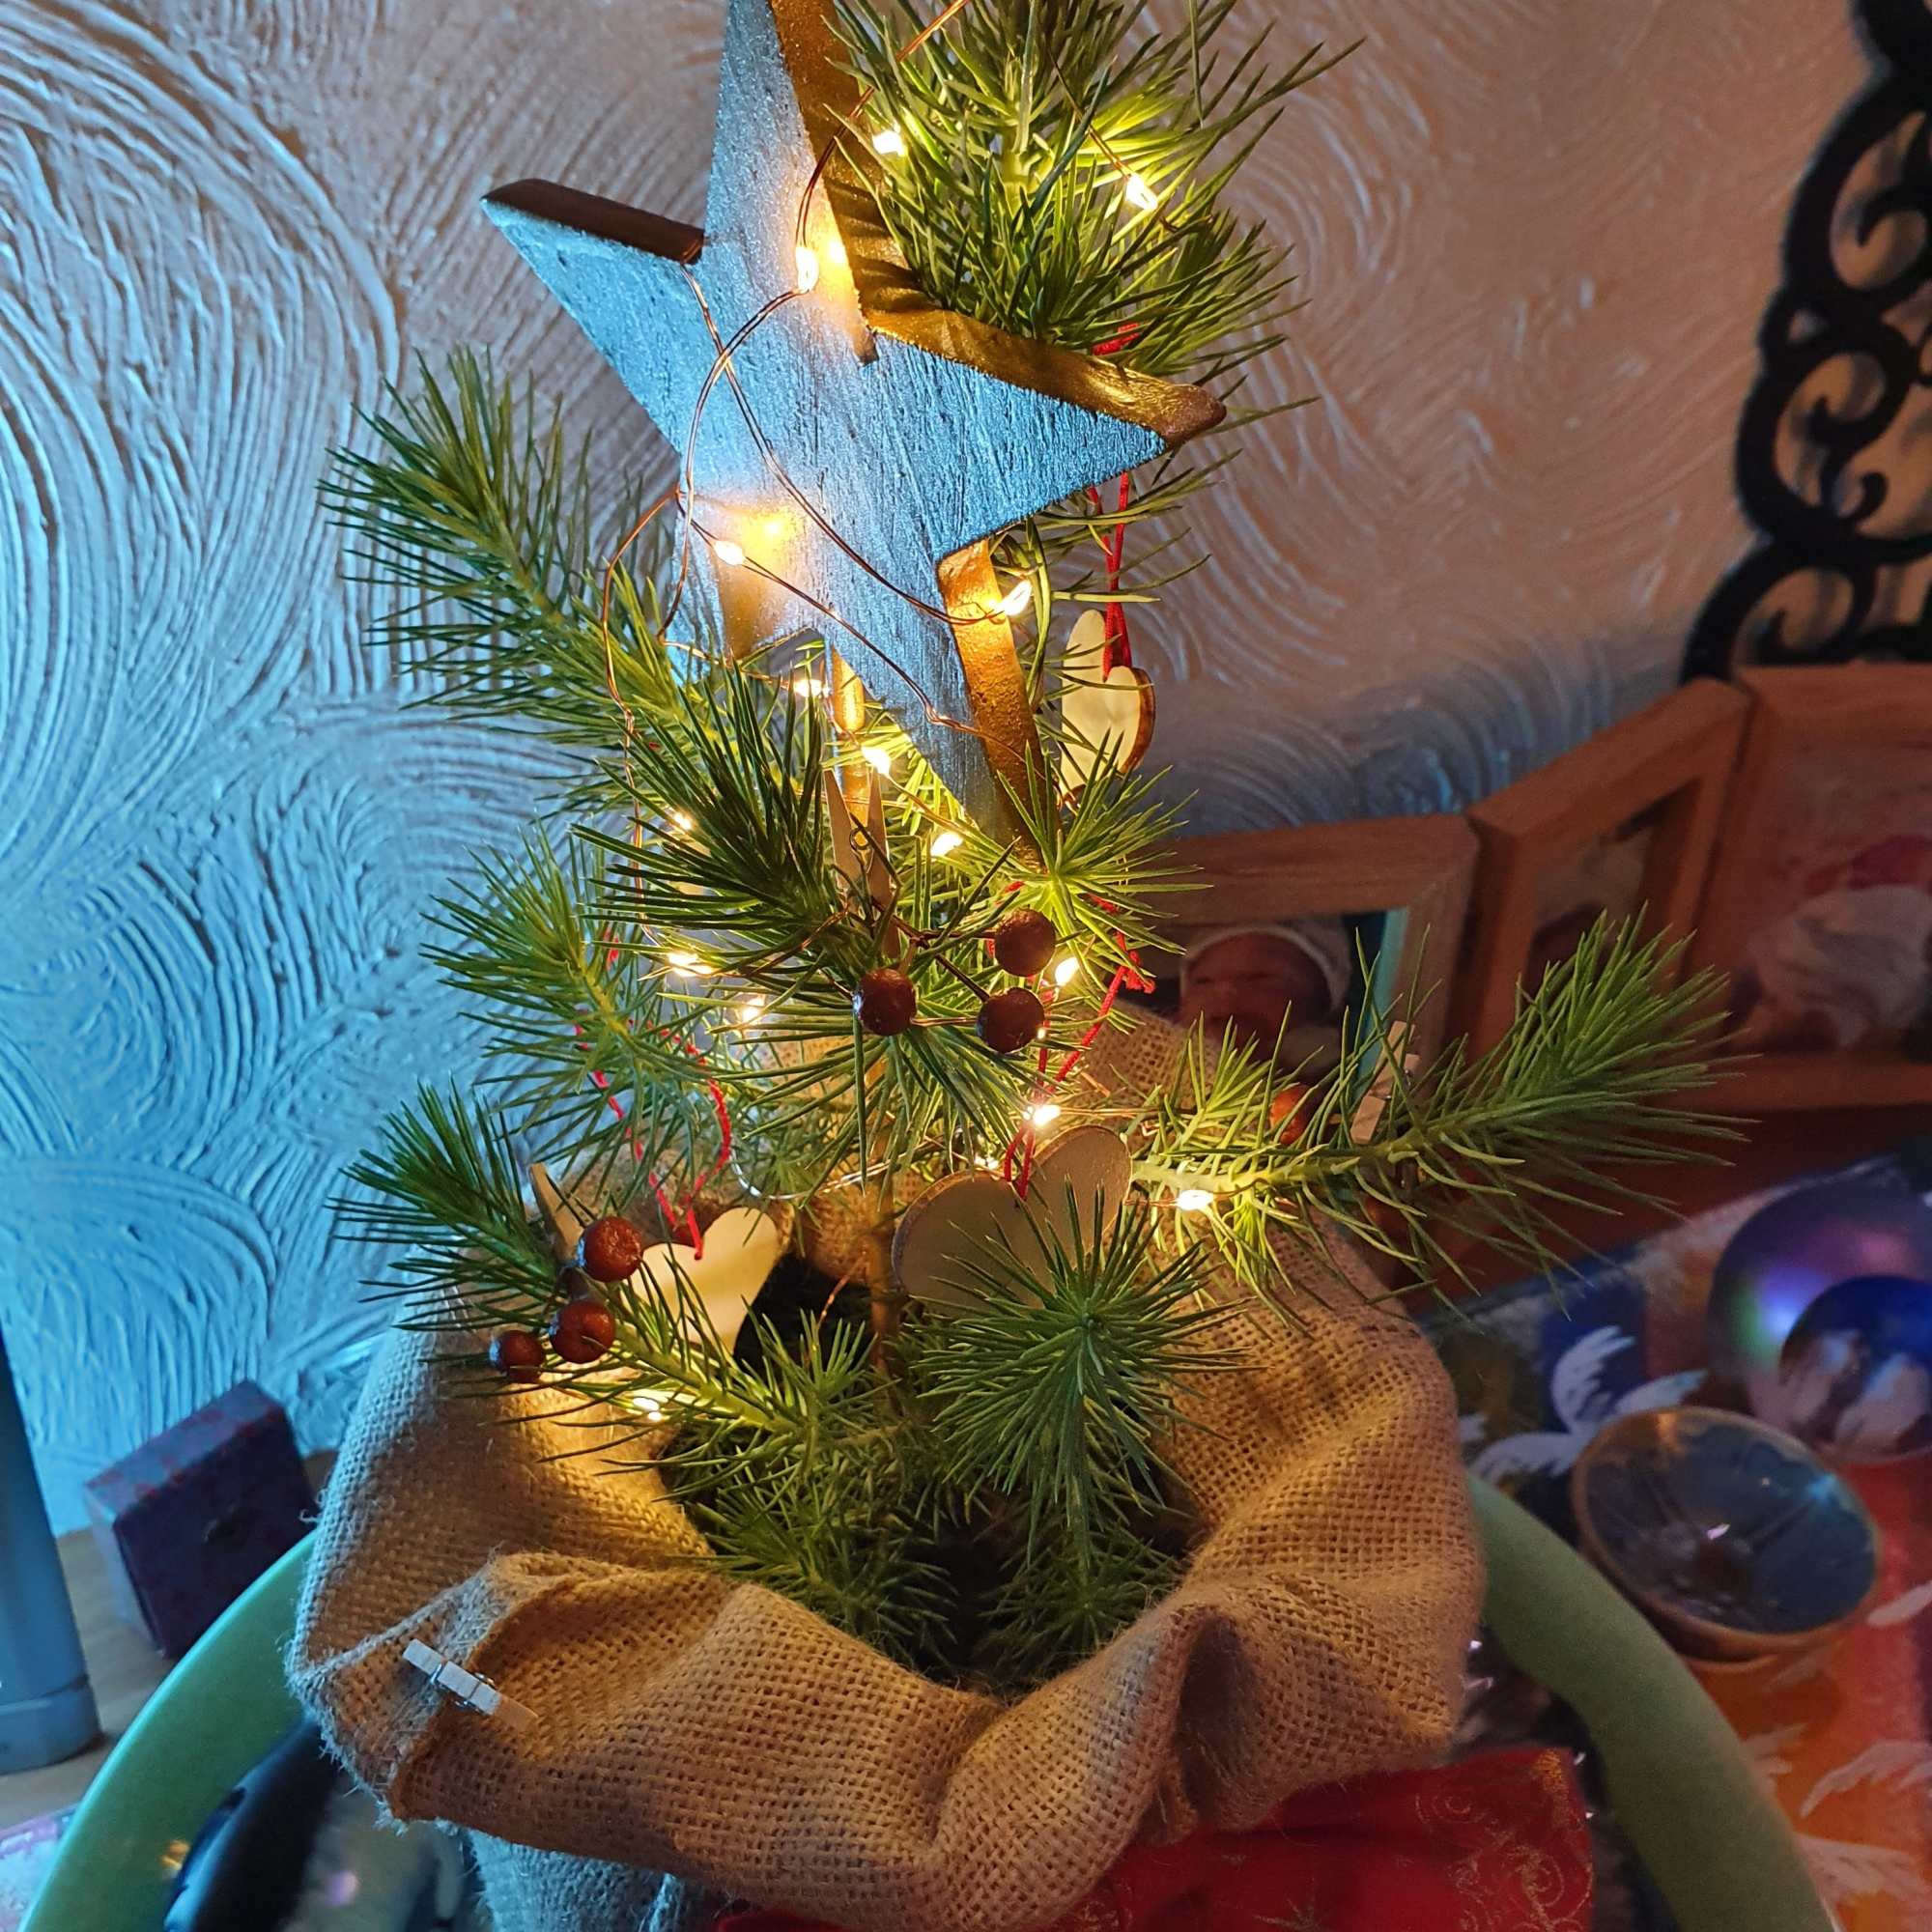 Small growing Christmas tree with small lights; standing in a hessian sack